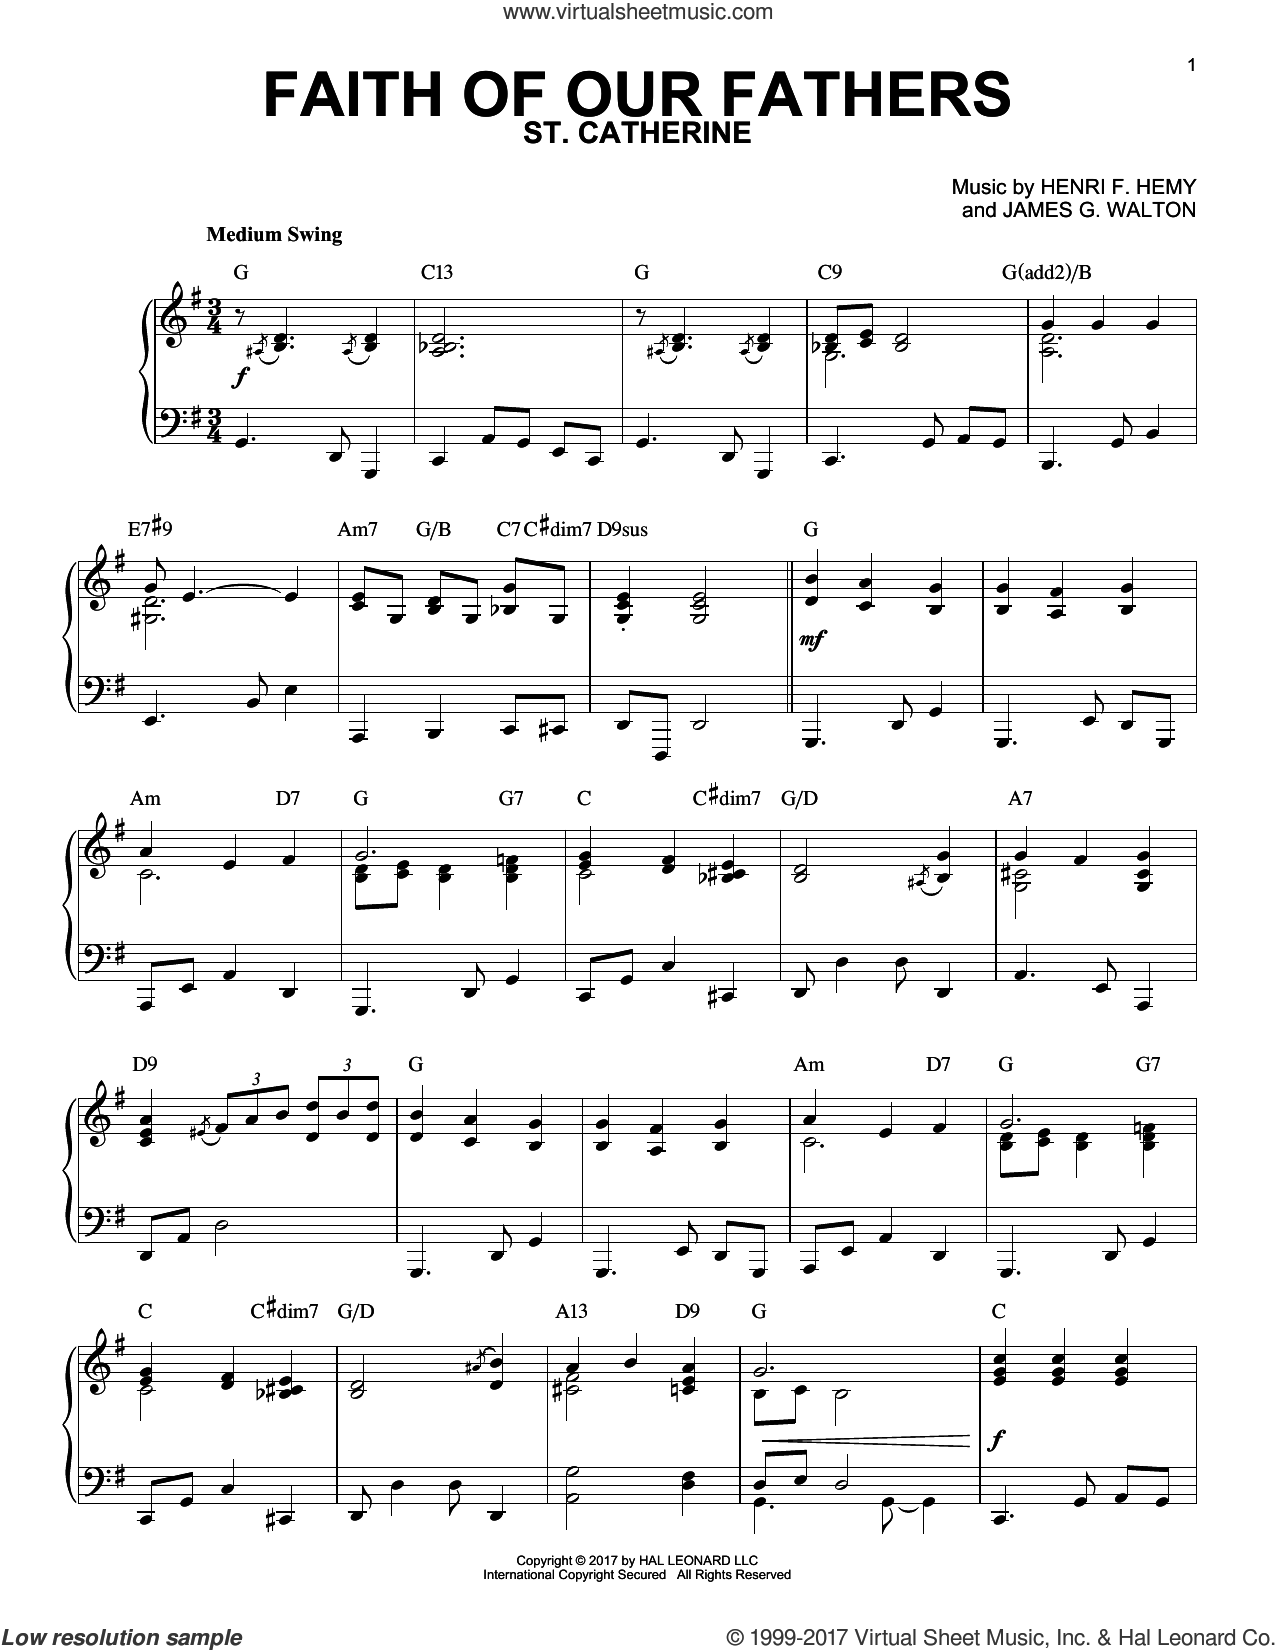 Faith Of Our Fathers [Jazz version] sheet music for piano solo by Henri F. Hemy, Frederick William Faber and James G. Walton, intermediate skill level